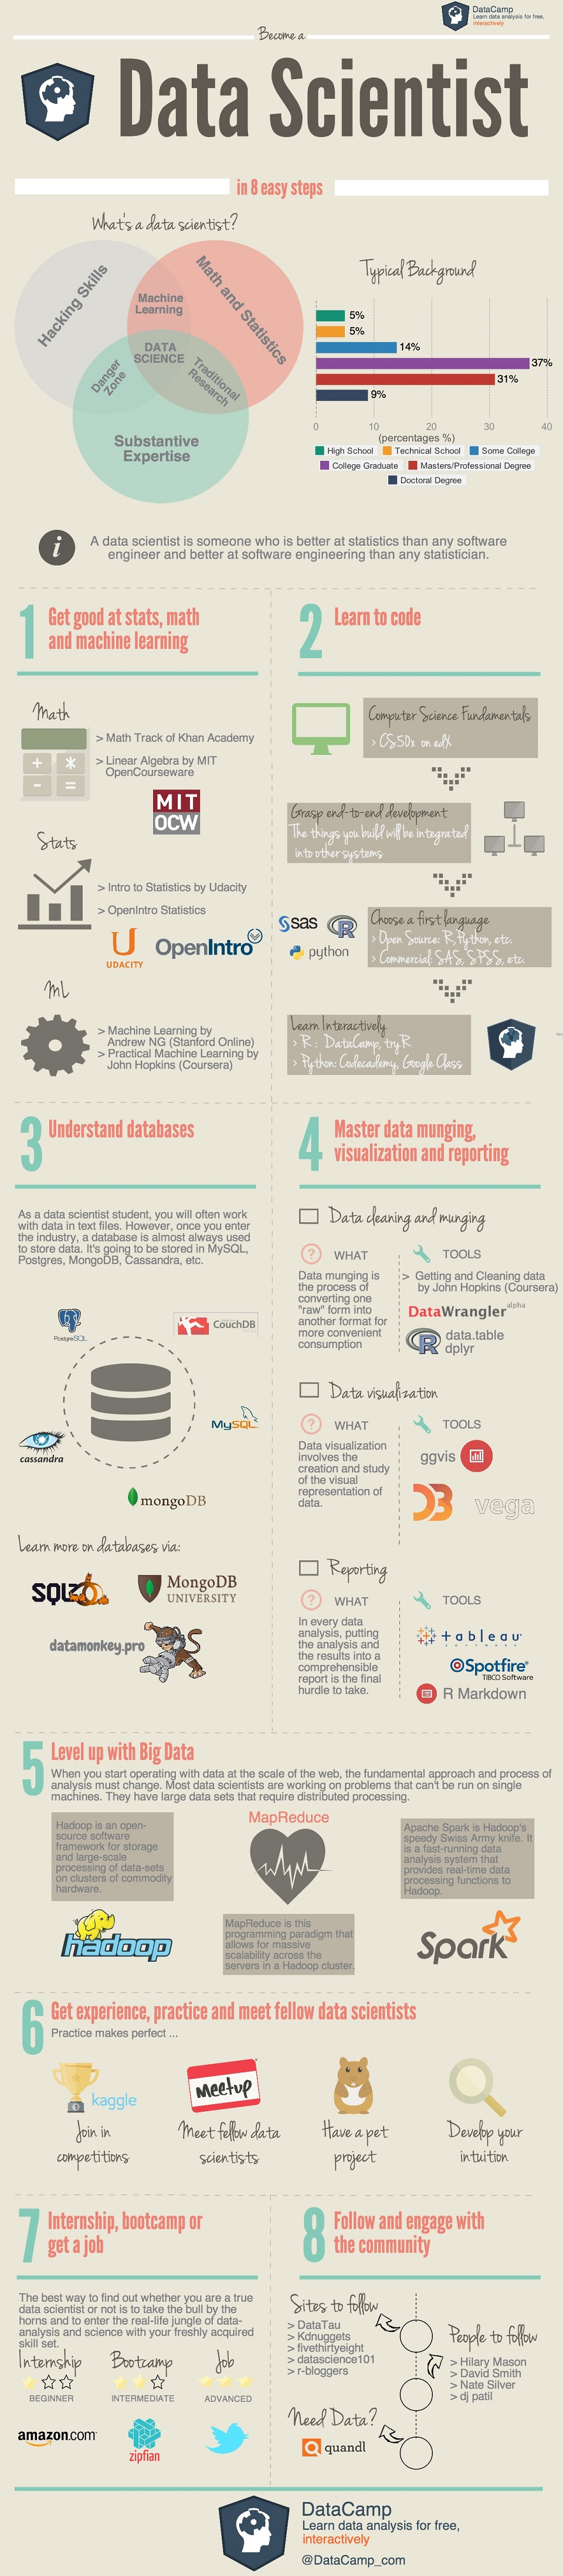 8 easy steps to becoming a data scientist infographic